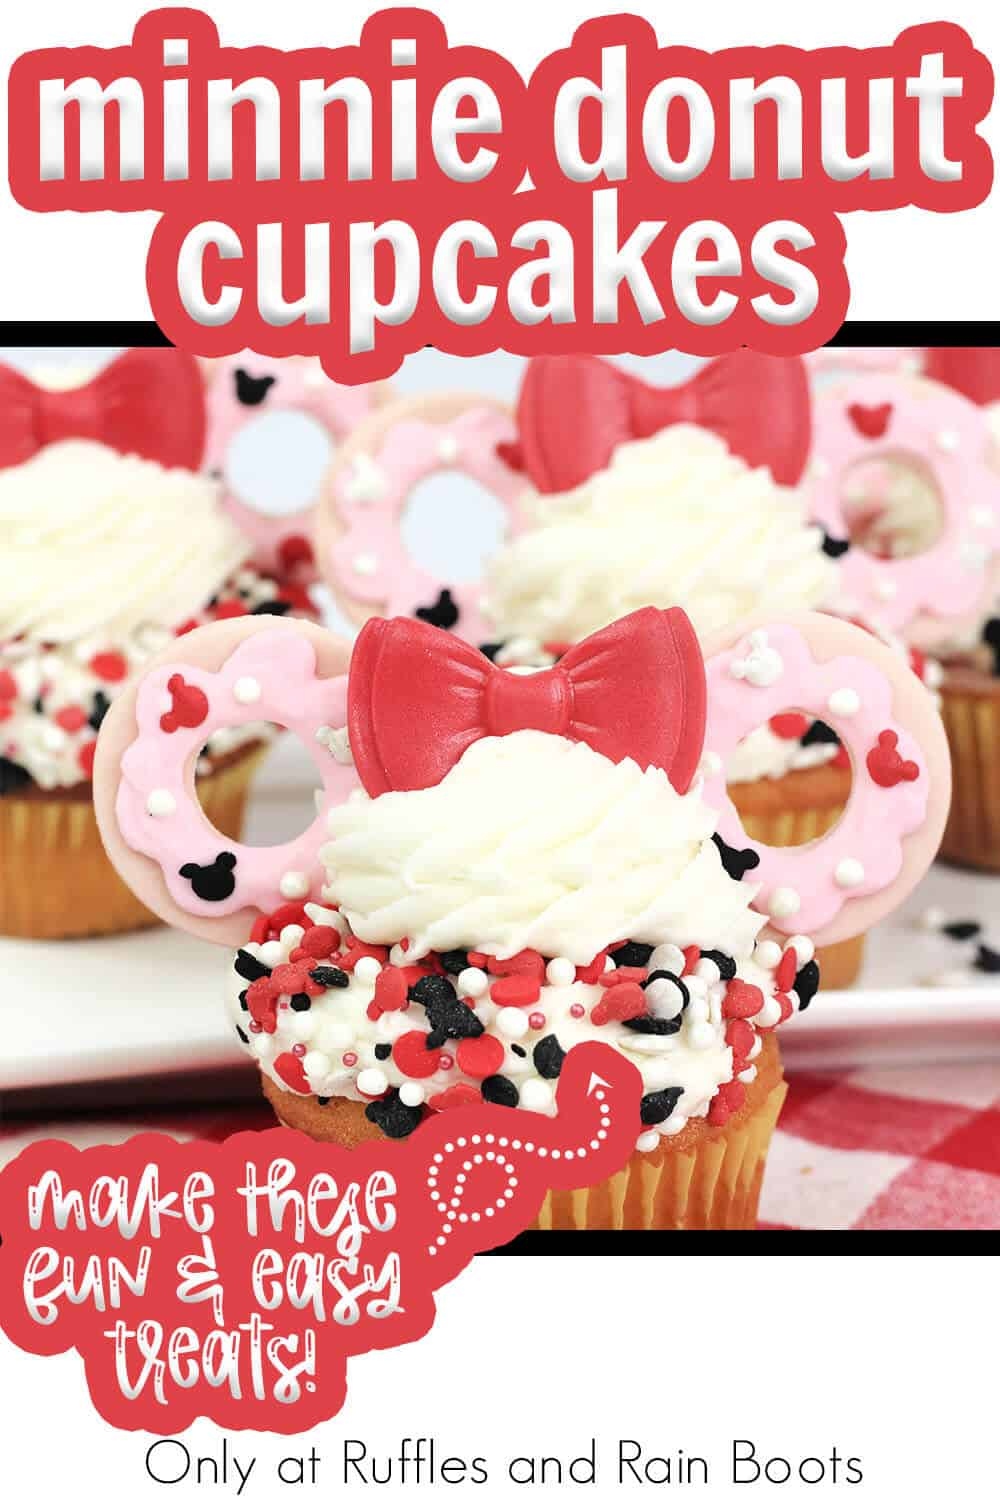 minnie ear cupcakes with donuts with text which reads minnie donut cupcakes make these fun & easy treats!